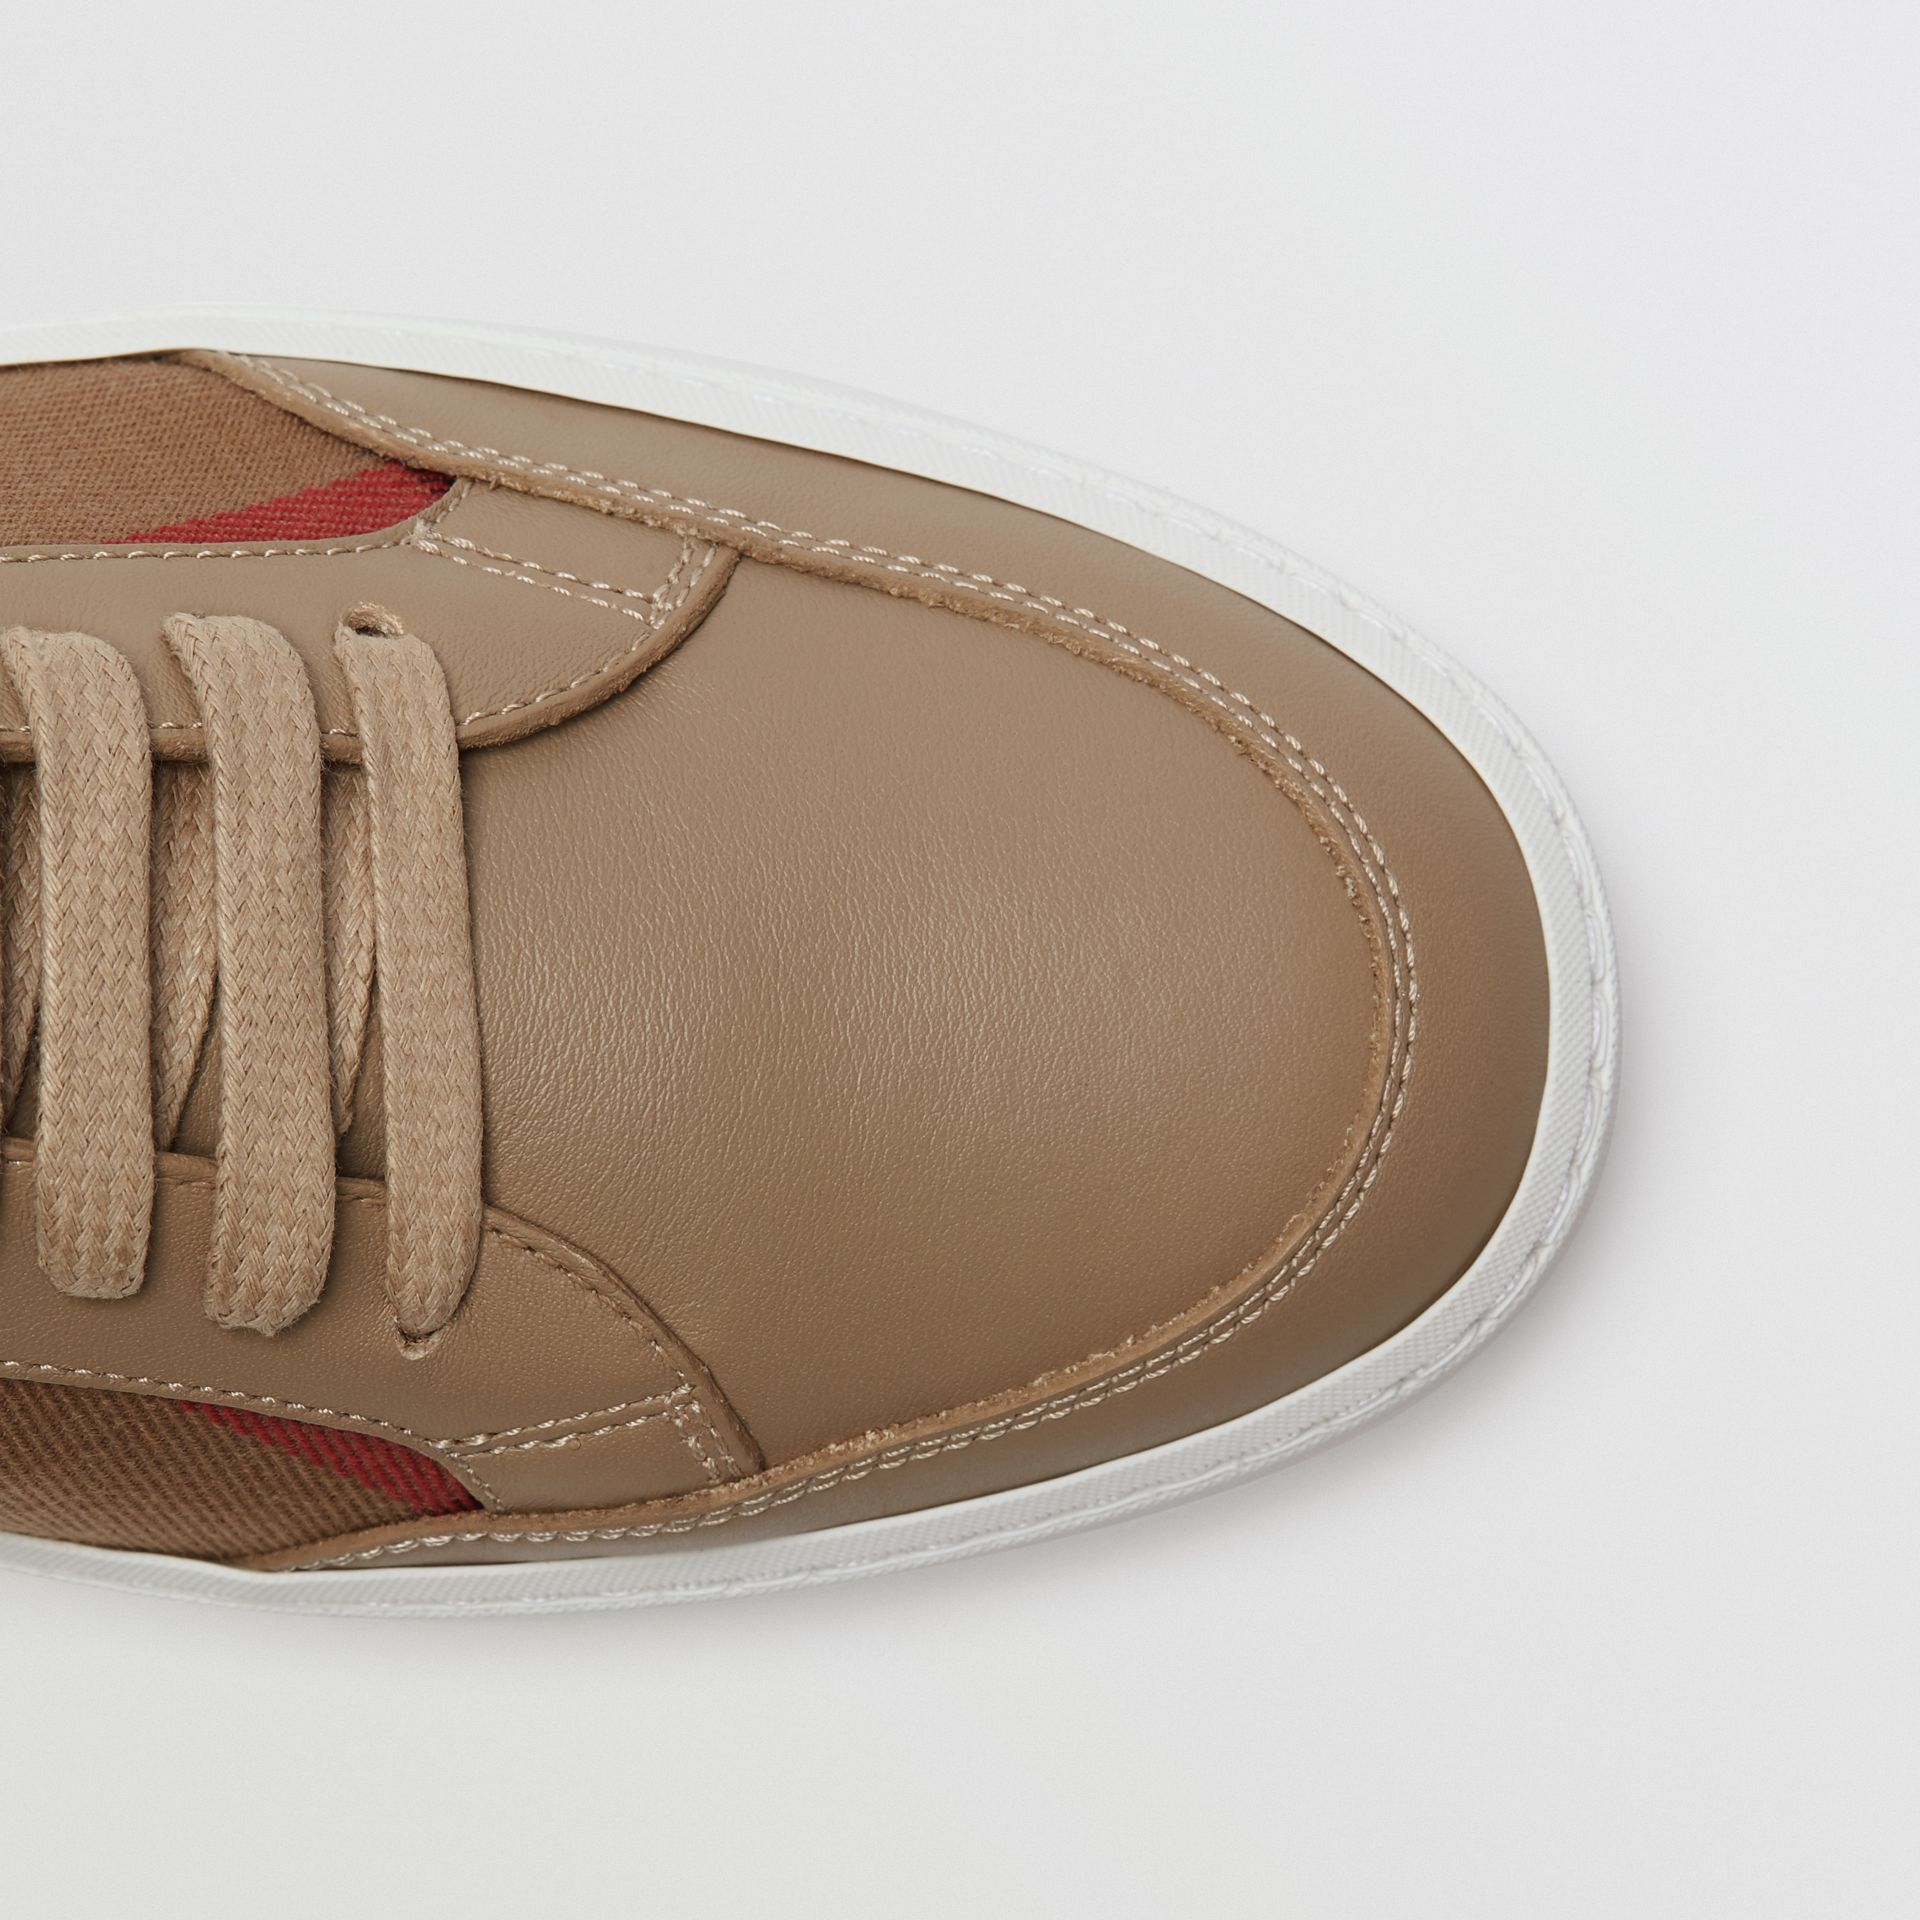 Check Detail Leather Sneakers in House Check/ Nude - Women | Burberry United States - gallery image 1